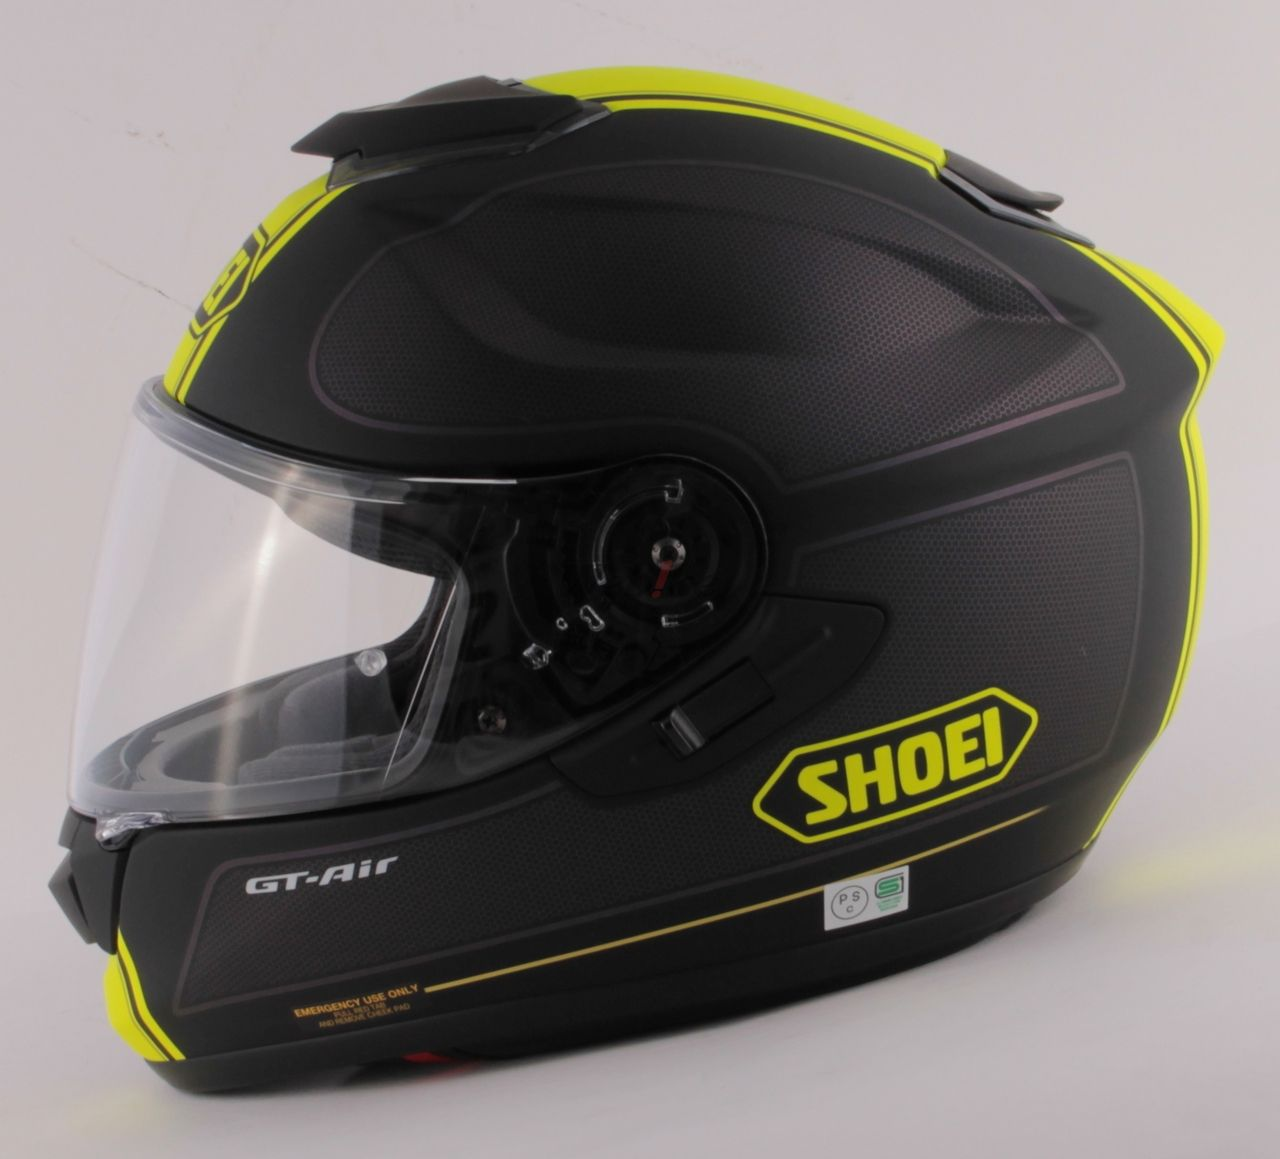 shoei gt air wanderer helmet size m 57 cm 58 cm ebay. Black Bedroom Furniture Sets. Home Design Ideas